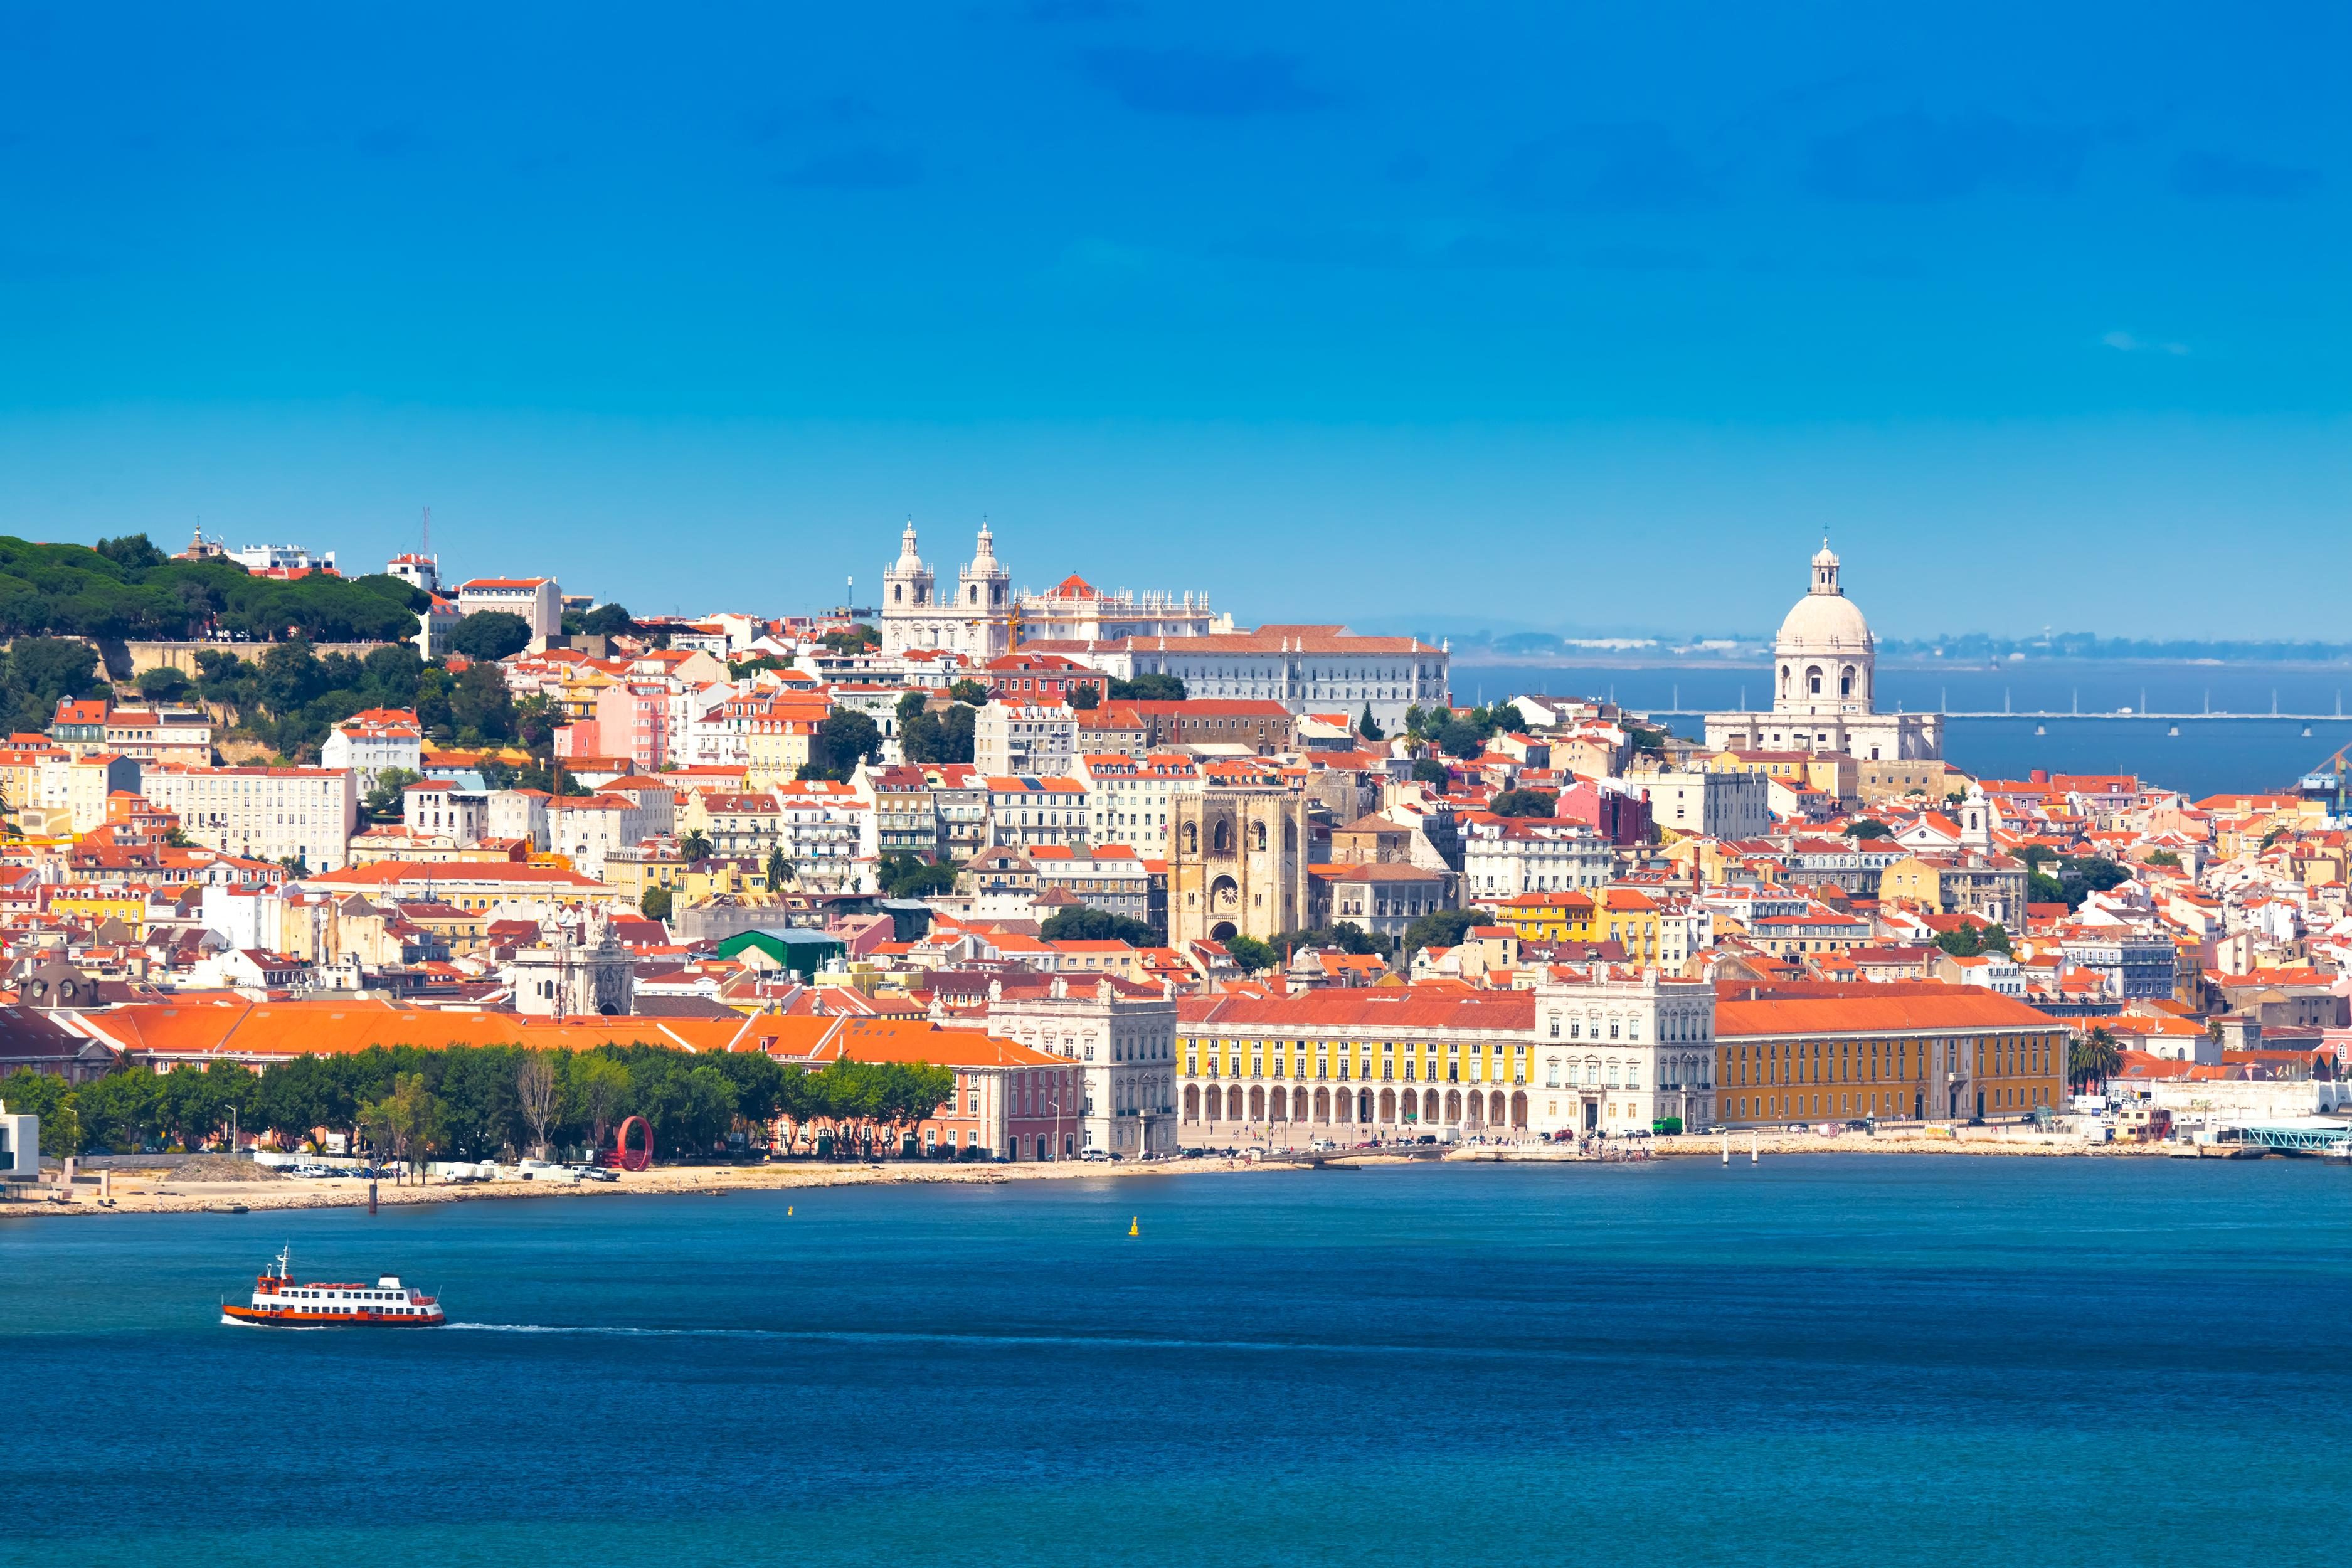 Lisbon is Europe's second-oldest capital